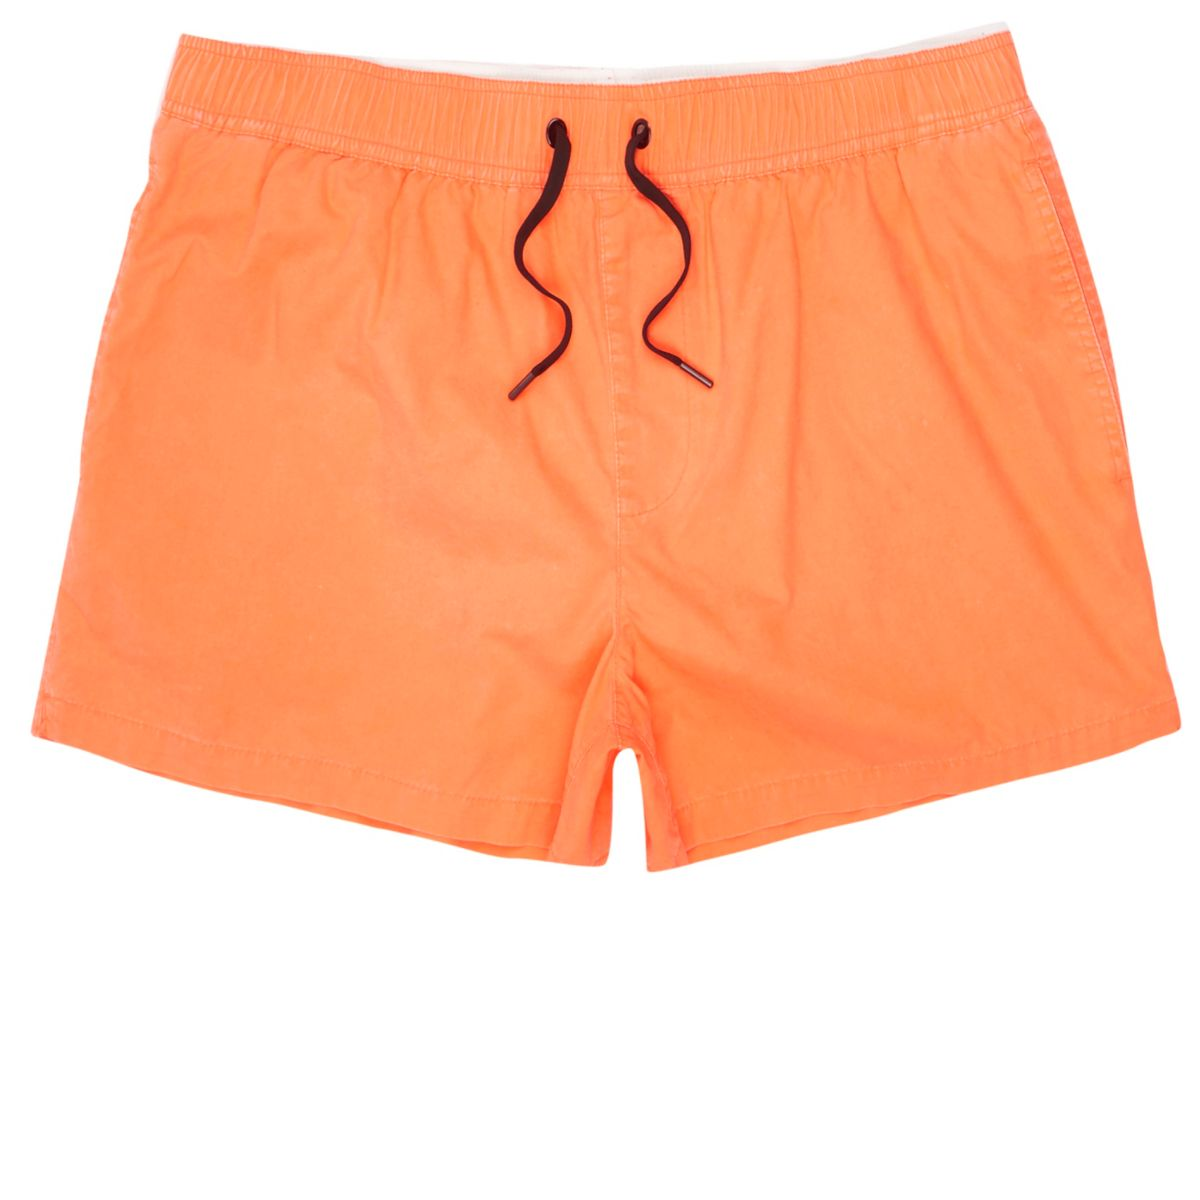 Orange acid wash short swim trunks